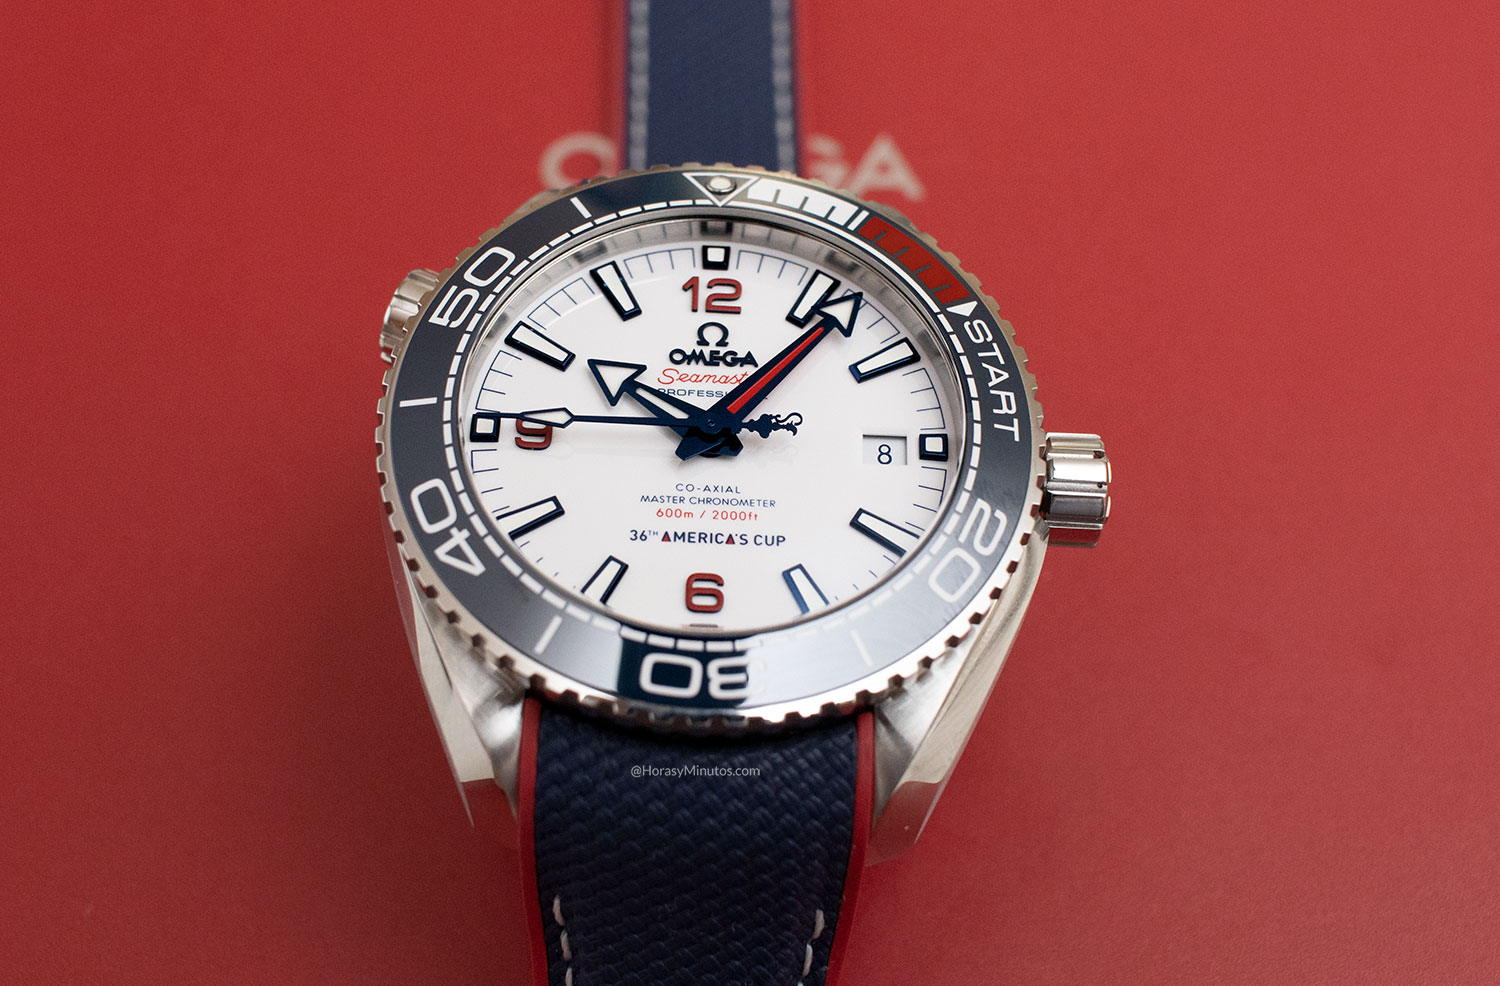 Perspectiva del OMEGA Seamaster Planet Ocean 36th America's Cup Limited Edition